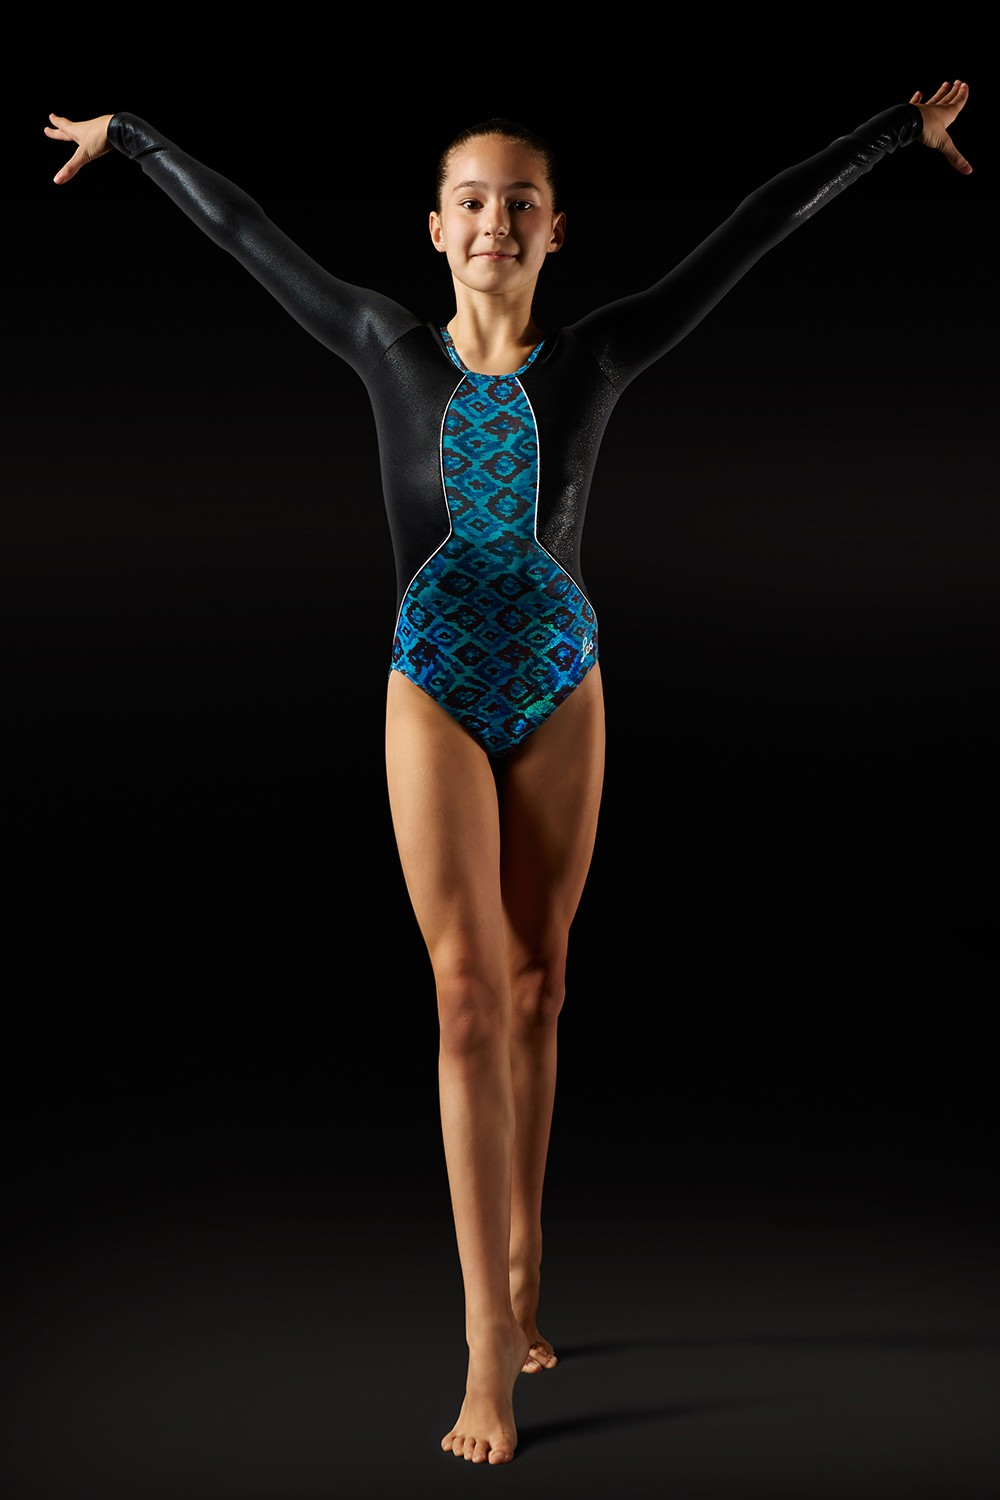 Aztec Print Leotard - Girls Girl's Gymnastics Leotards